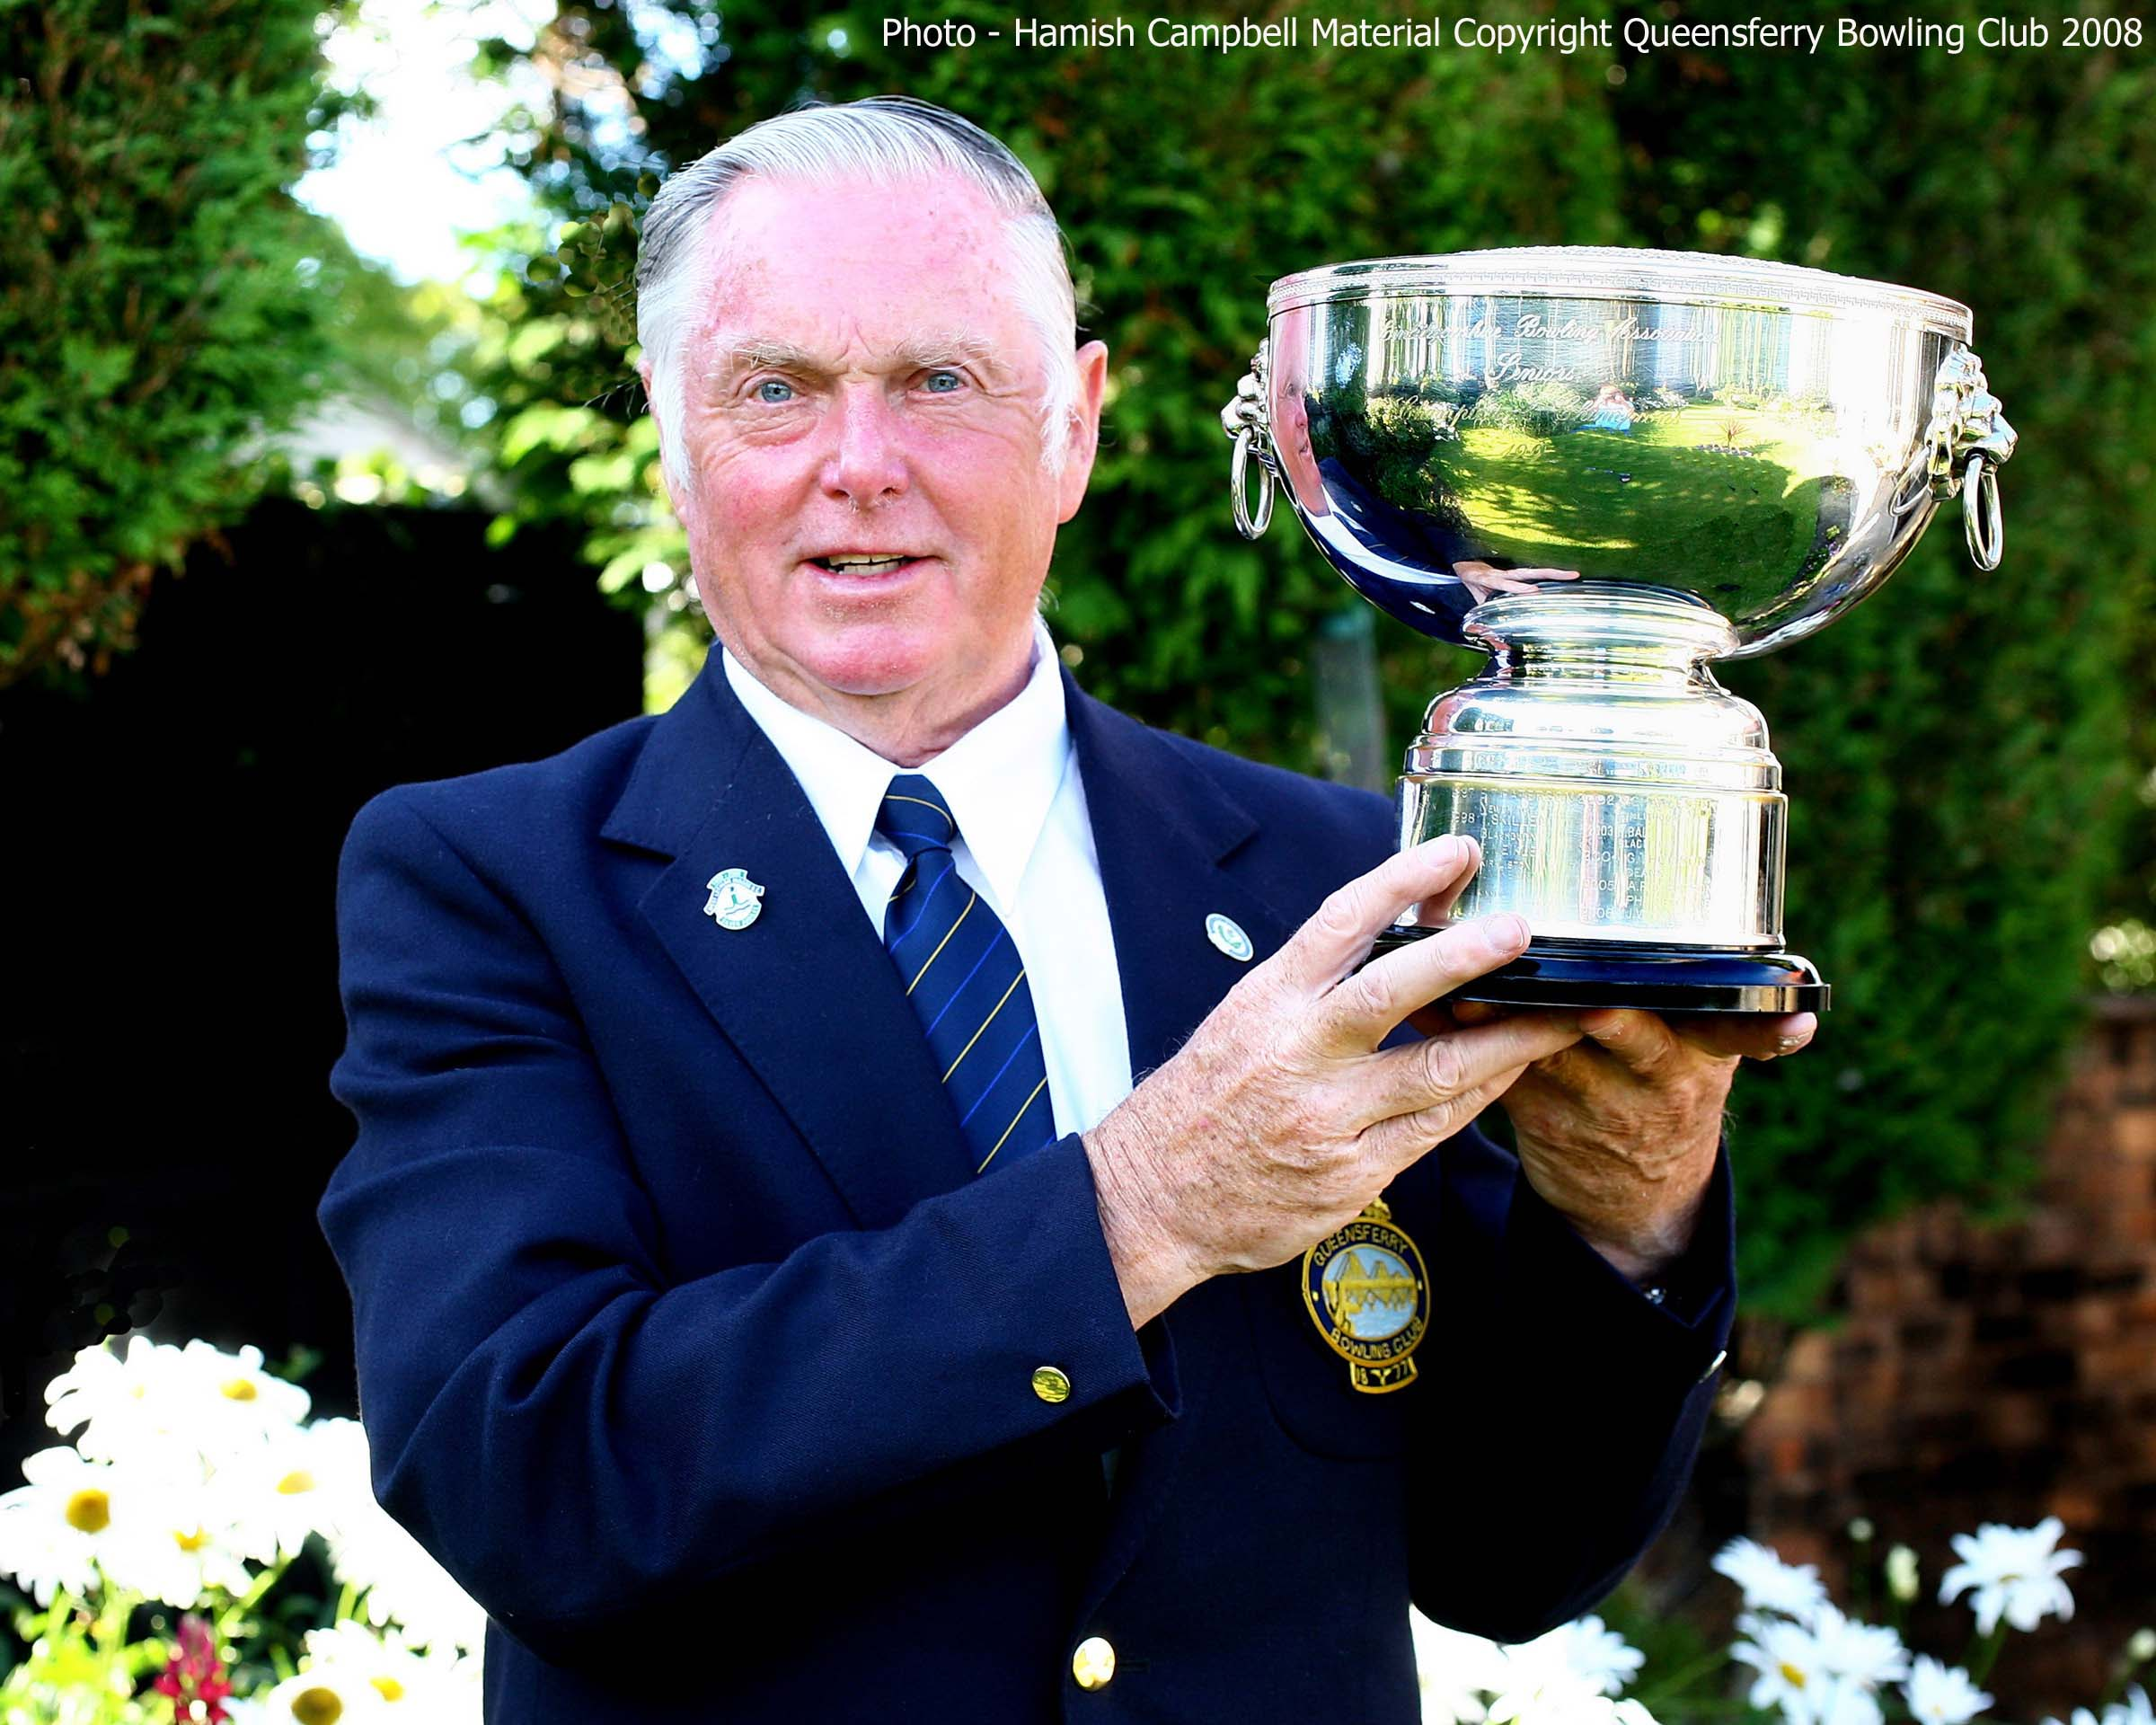 2008 Senior Champion of Champions